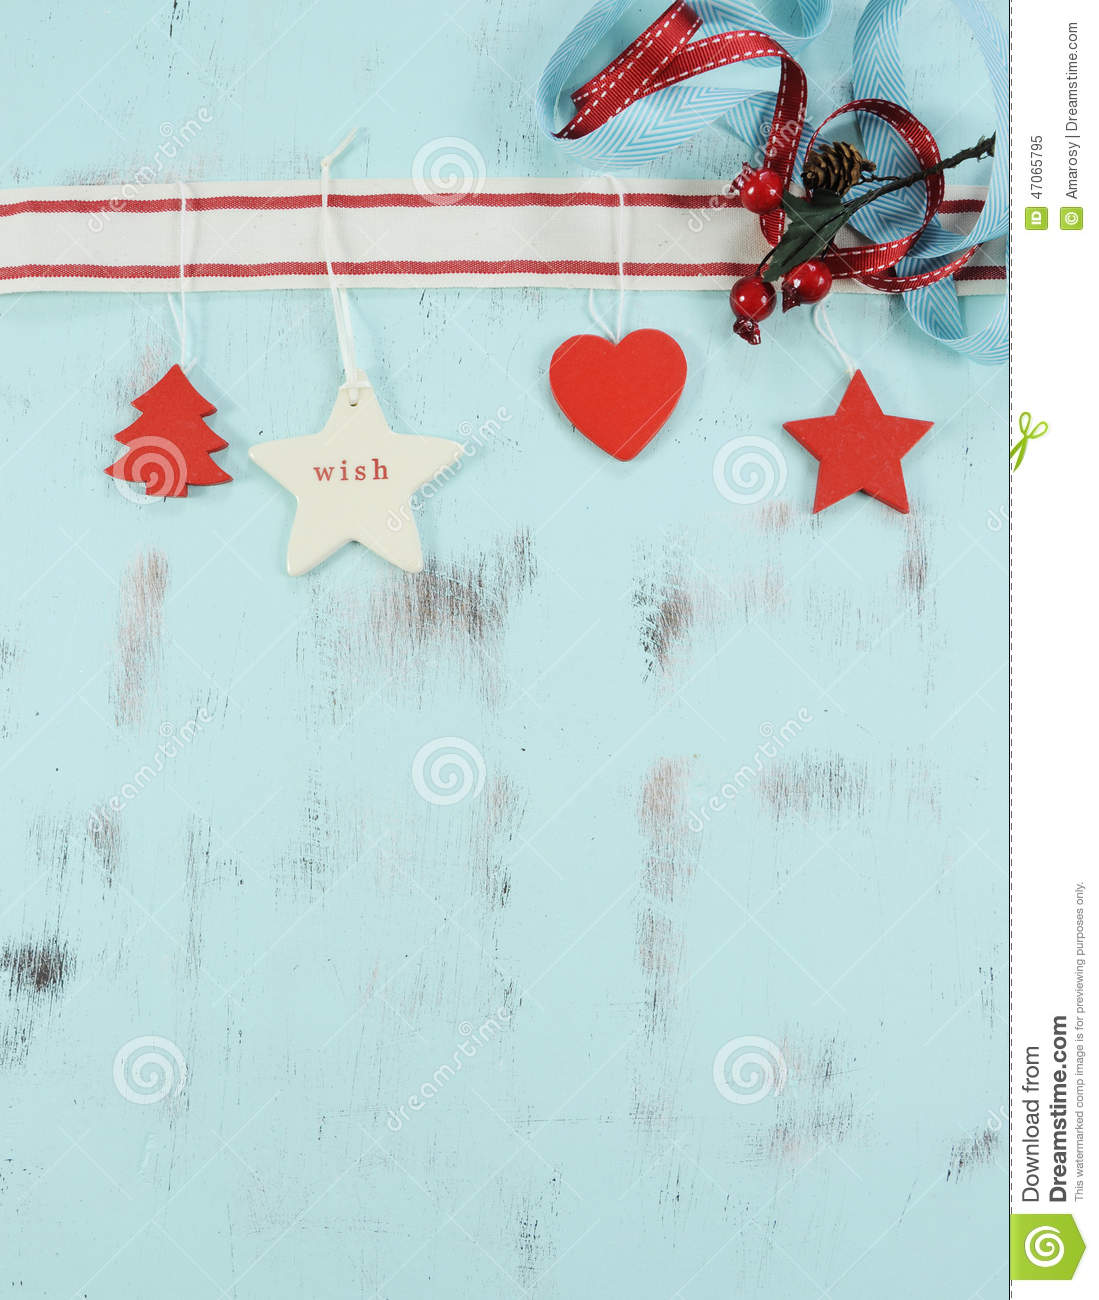 Modern red and white hanging Christmas decorations on aqua blue wood background. Vertical.